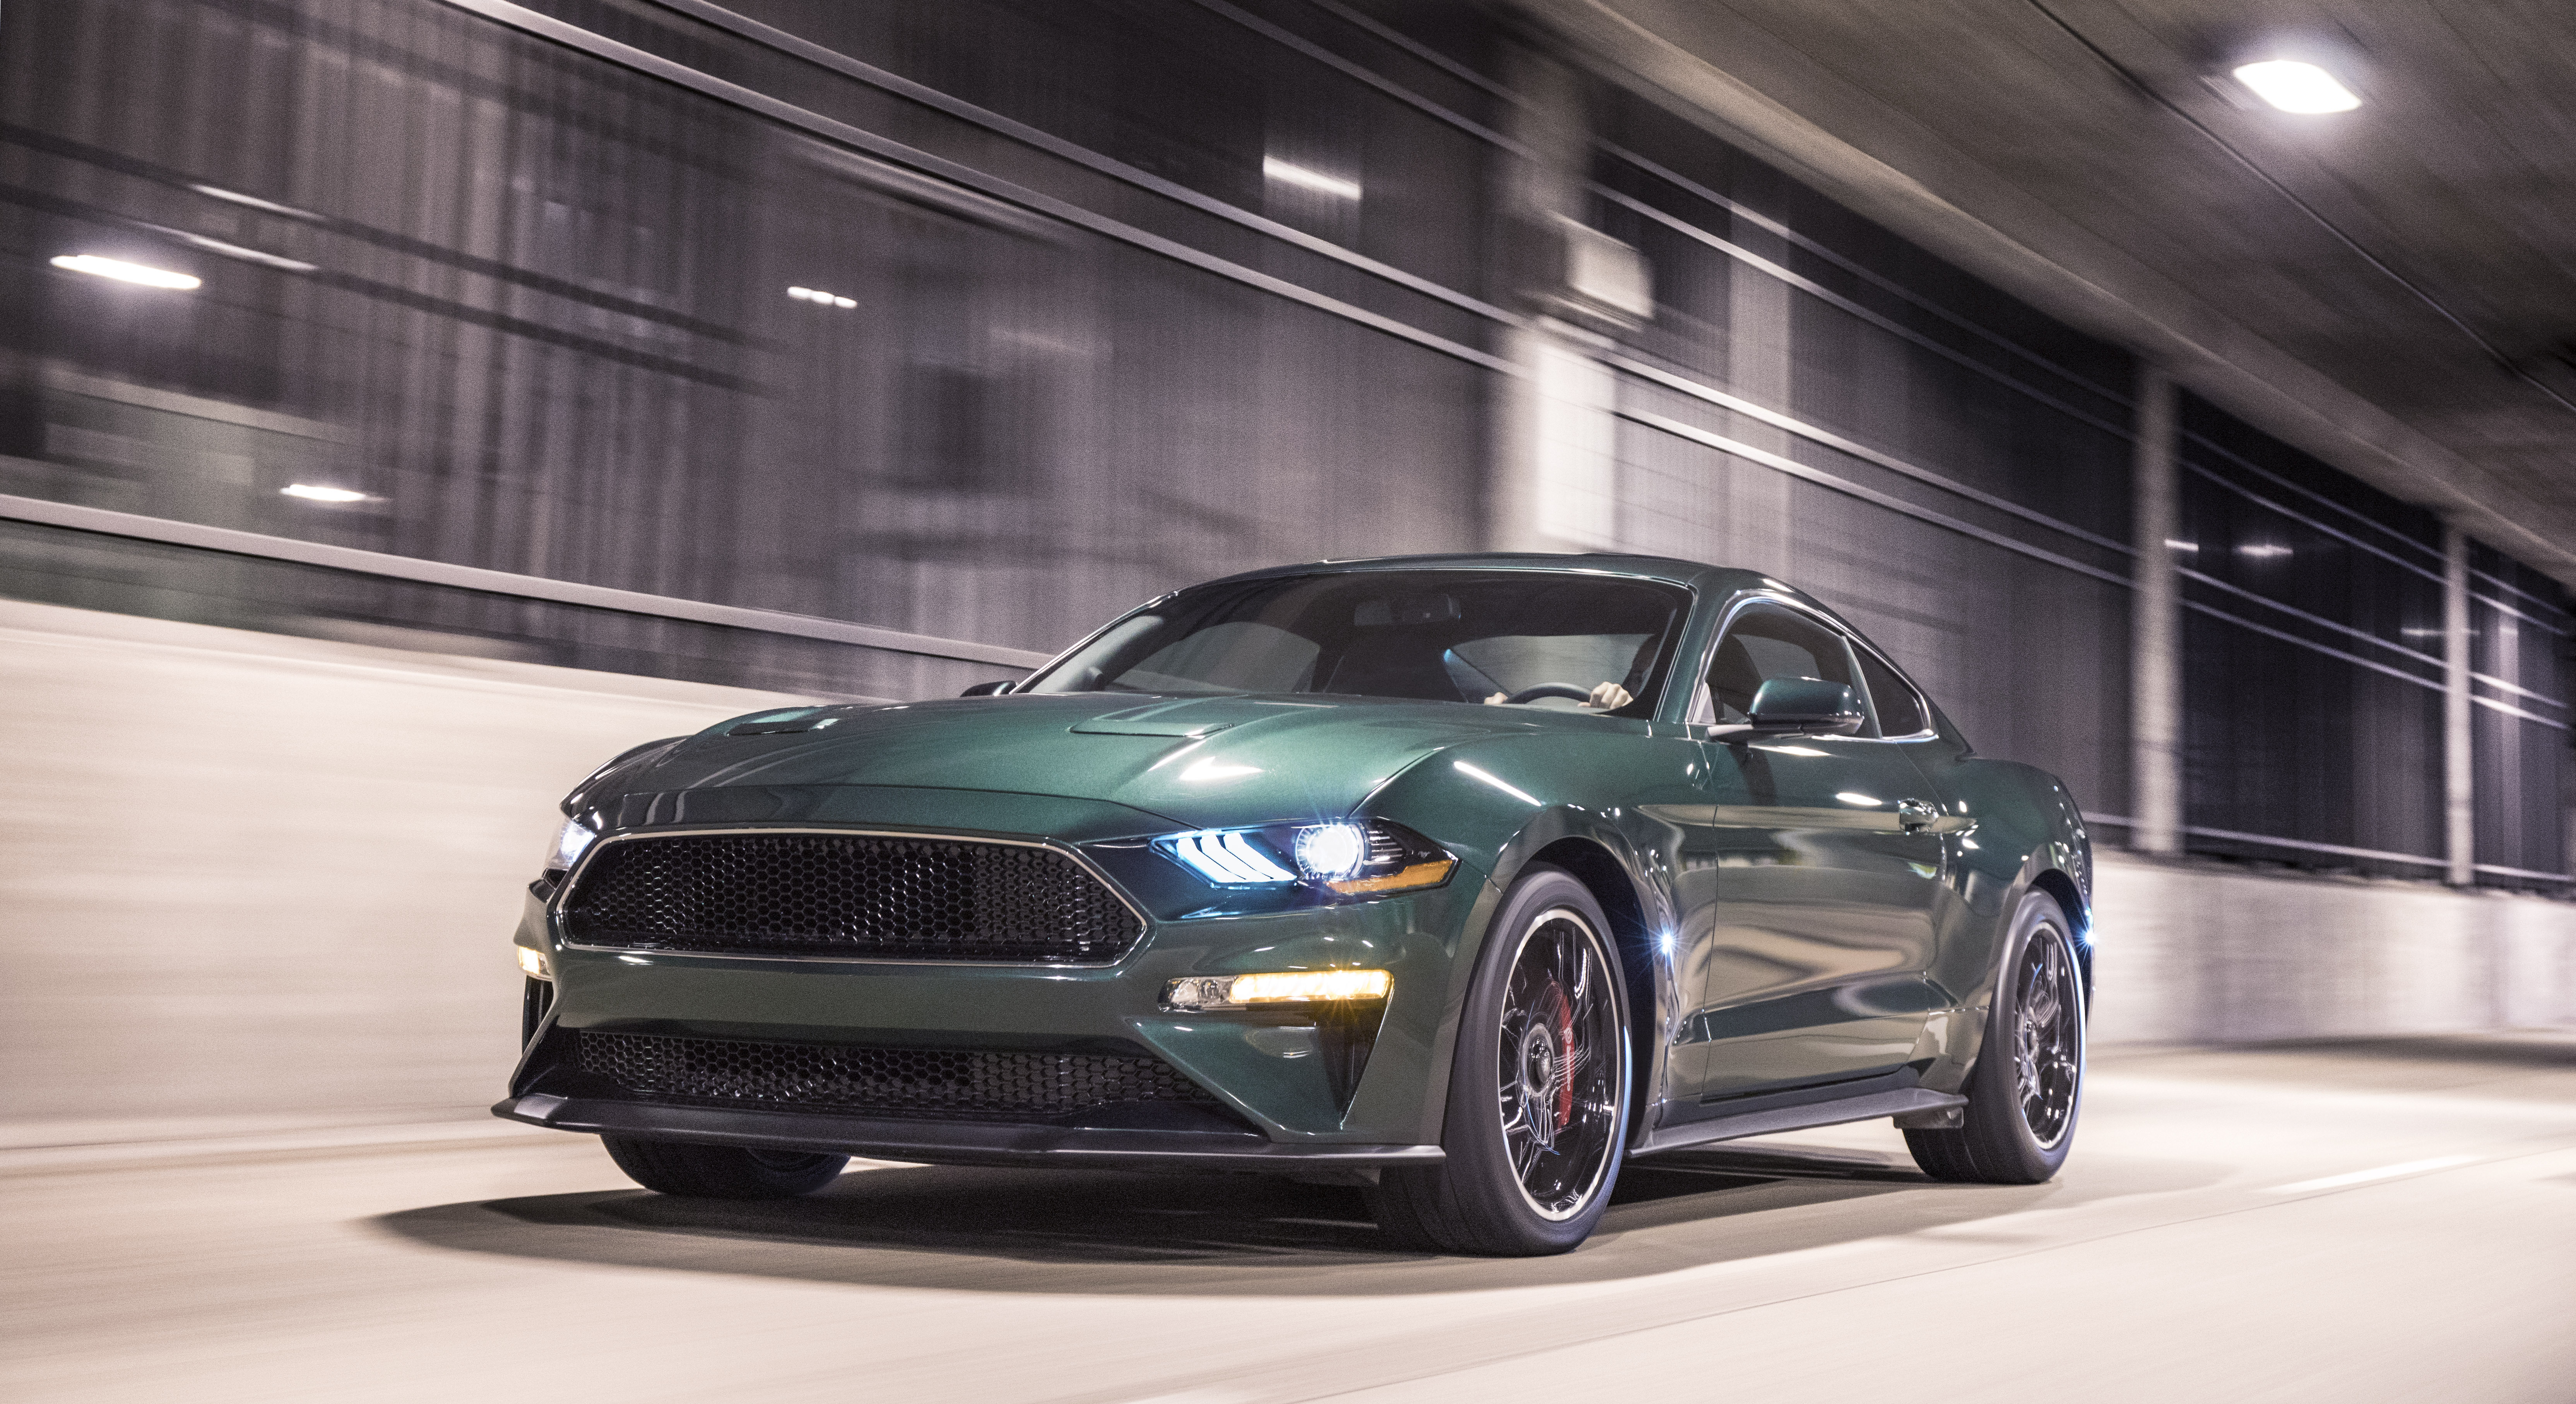 Tip Your Nostalgia Cap To The 475bhp Ford Mustang Bullitt